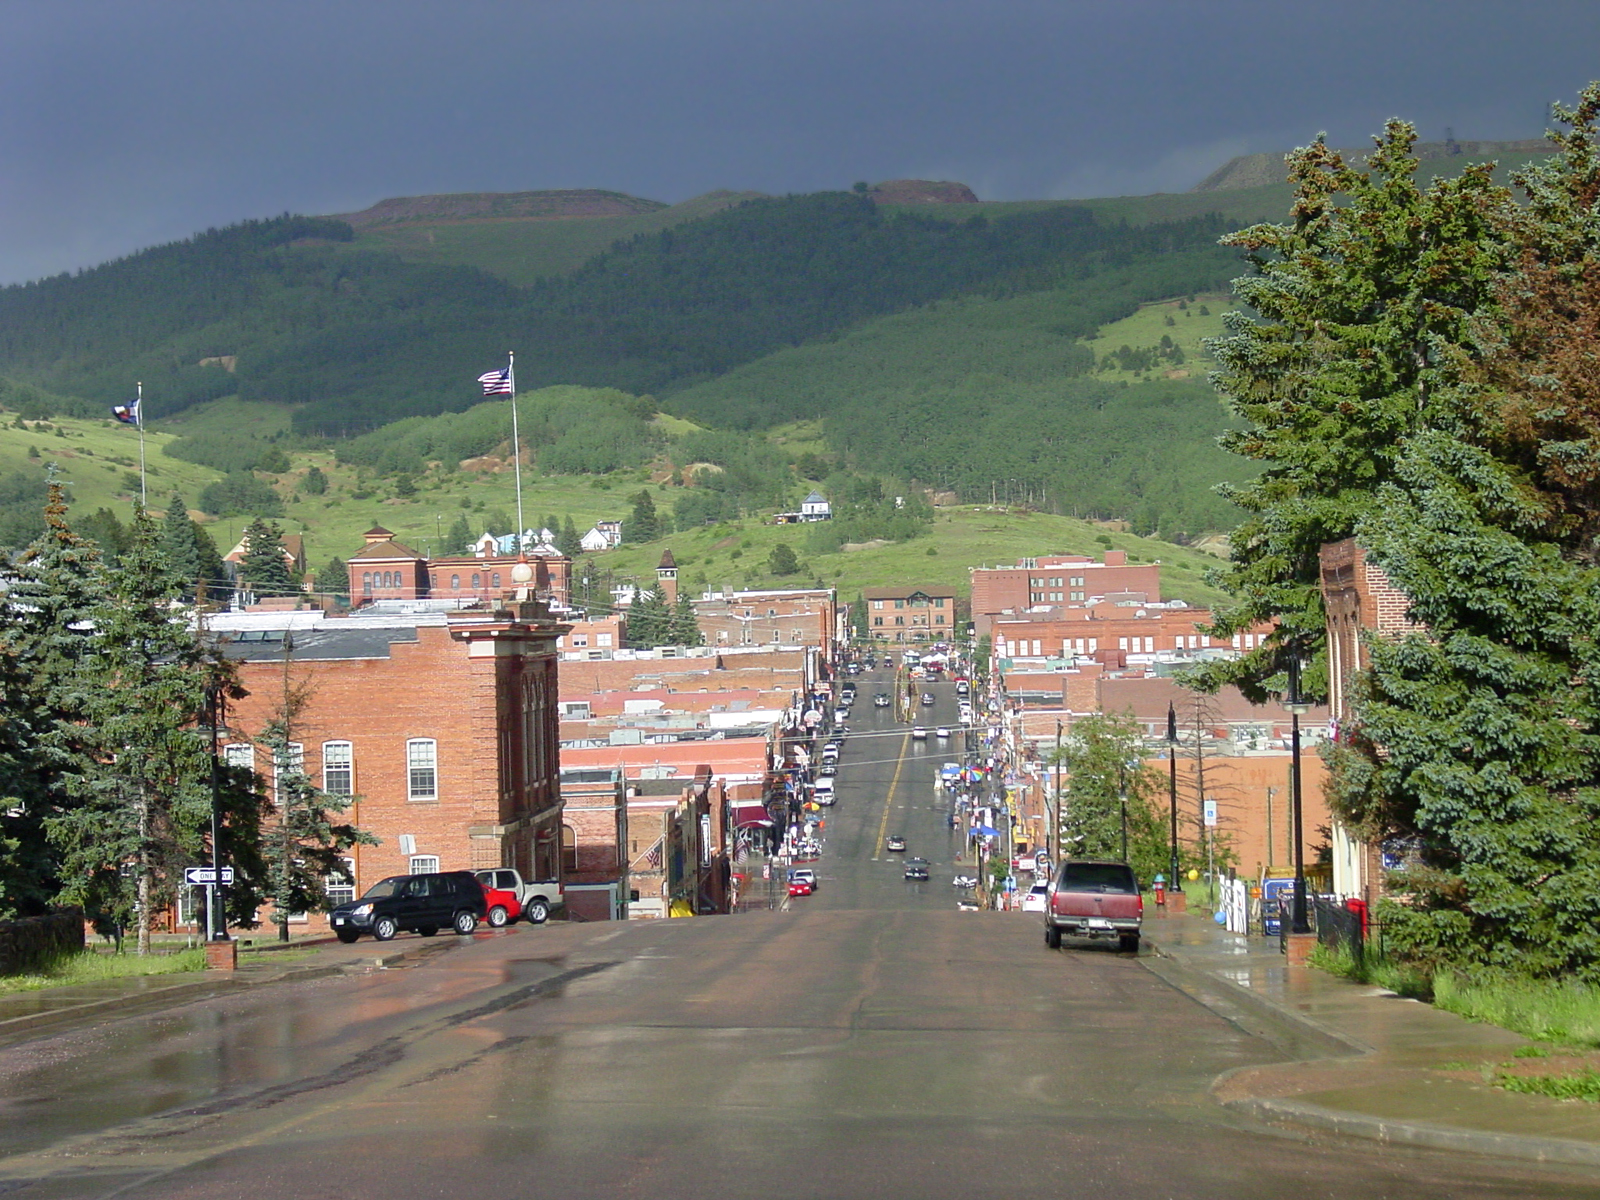 Inequity between rural and urban America can be addressed with broadband